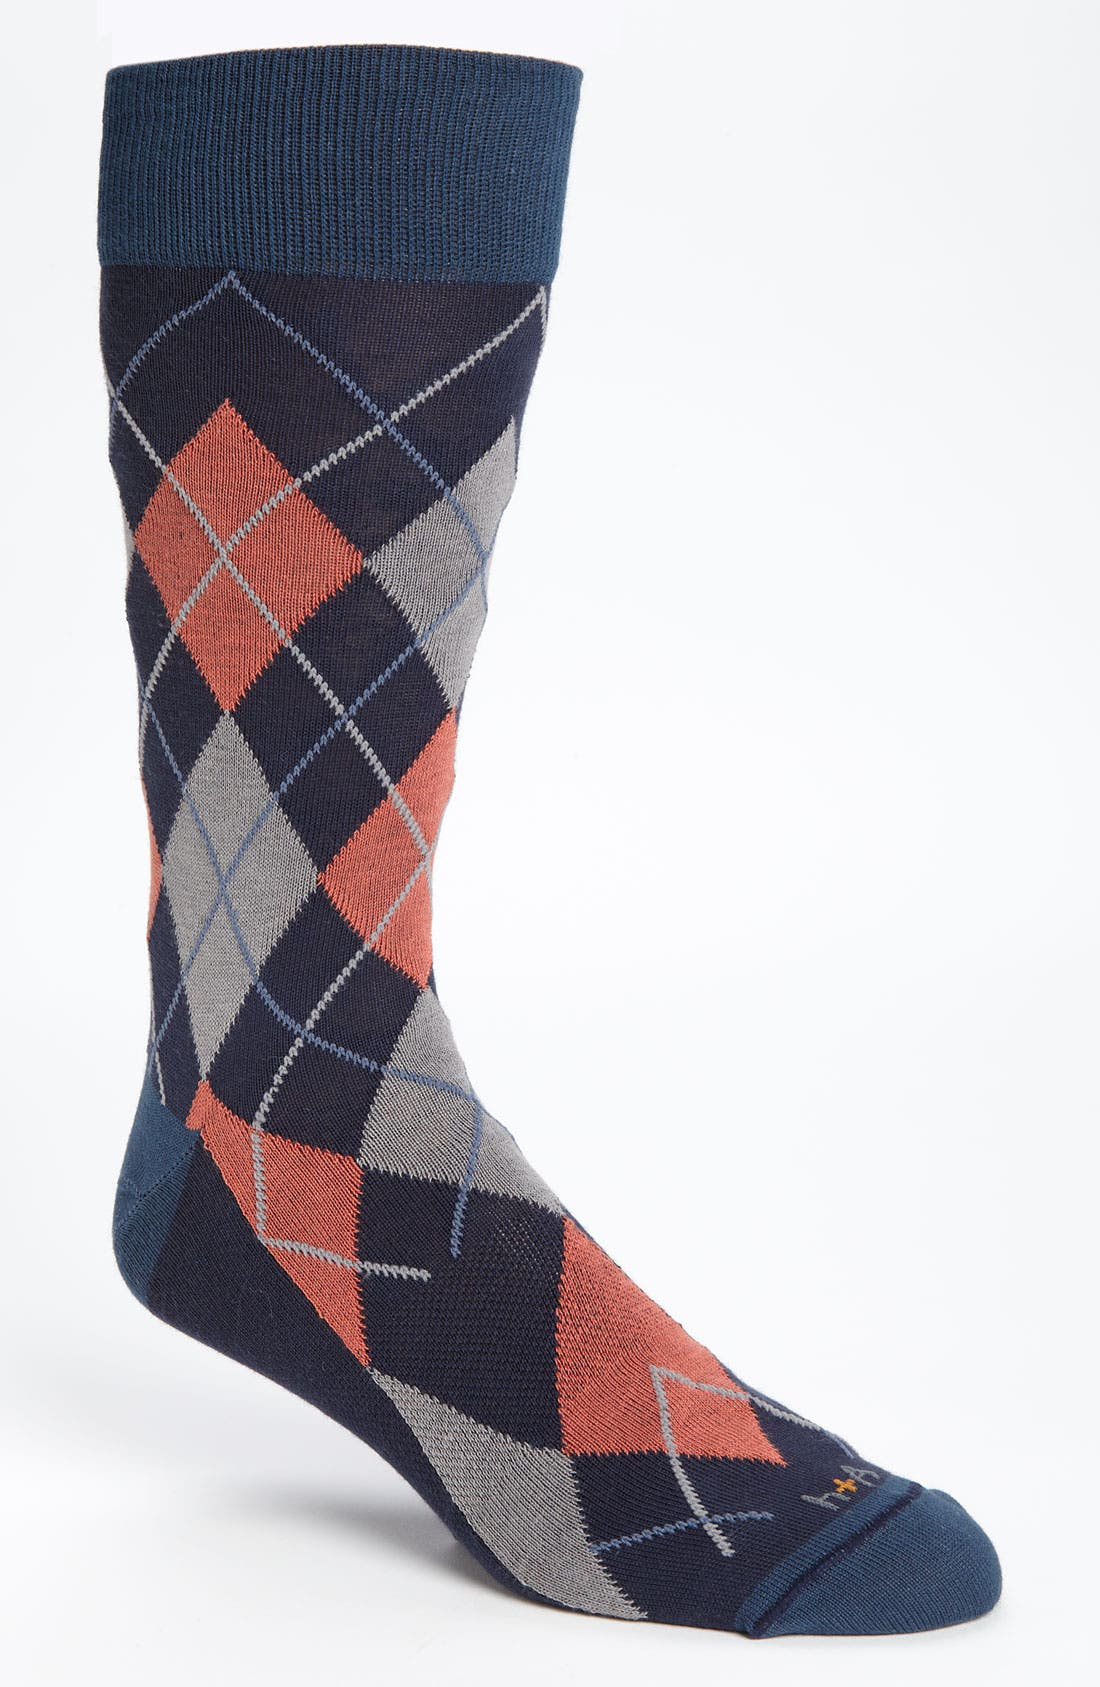 Main Image - hook + ALBERT Argyle Socks